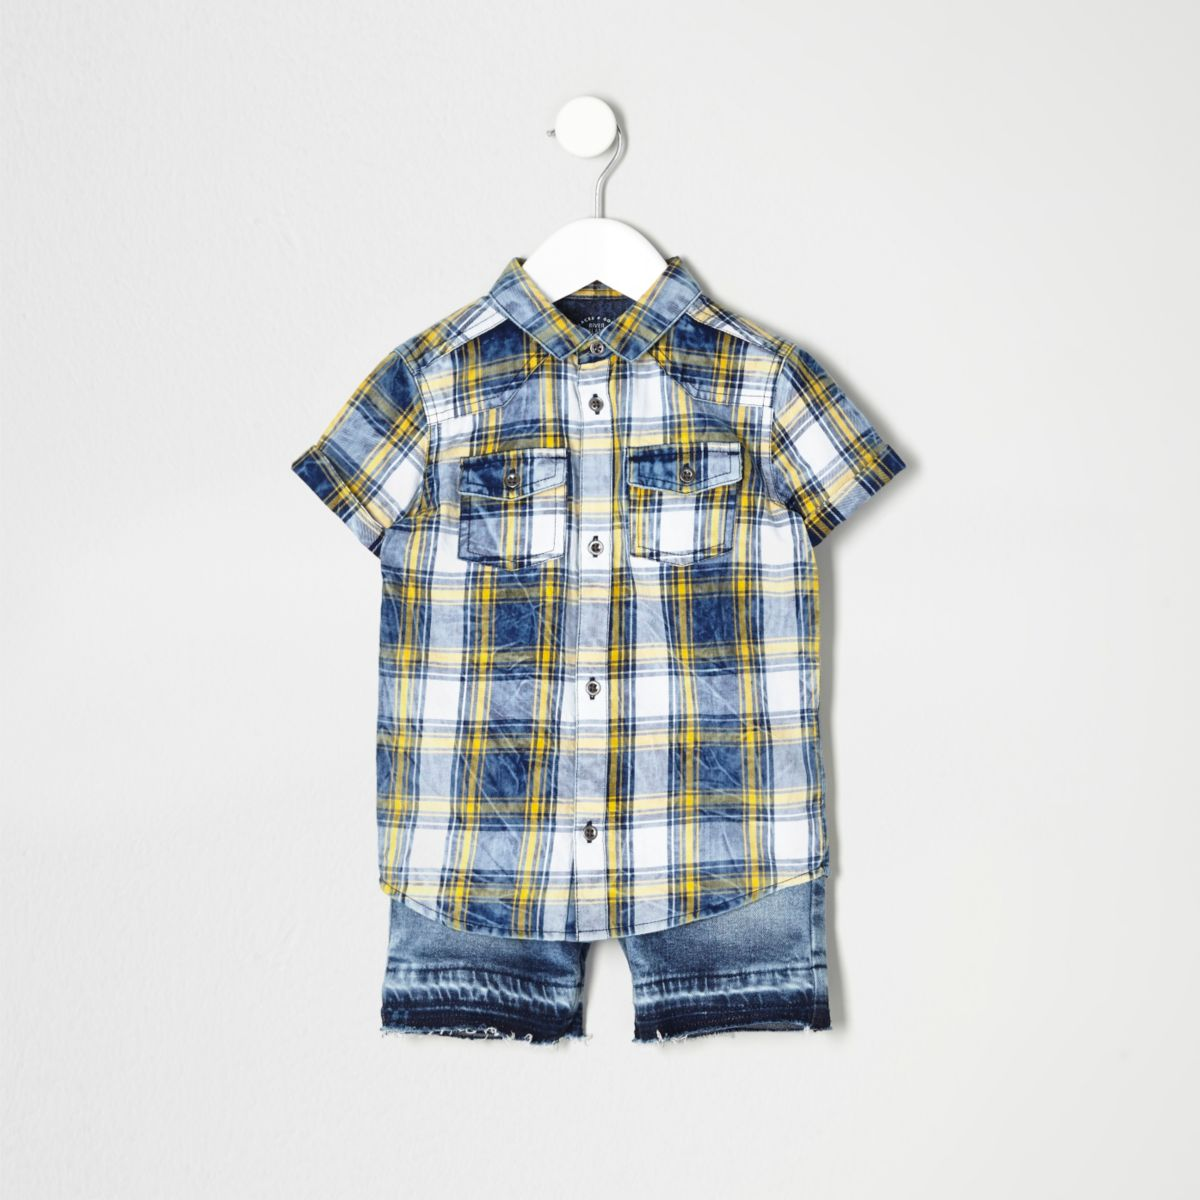 Mini boys blue check shirt and shorts outfit